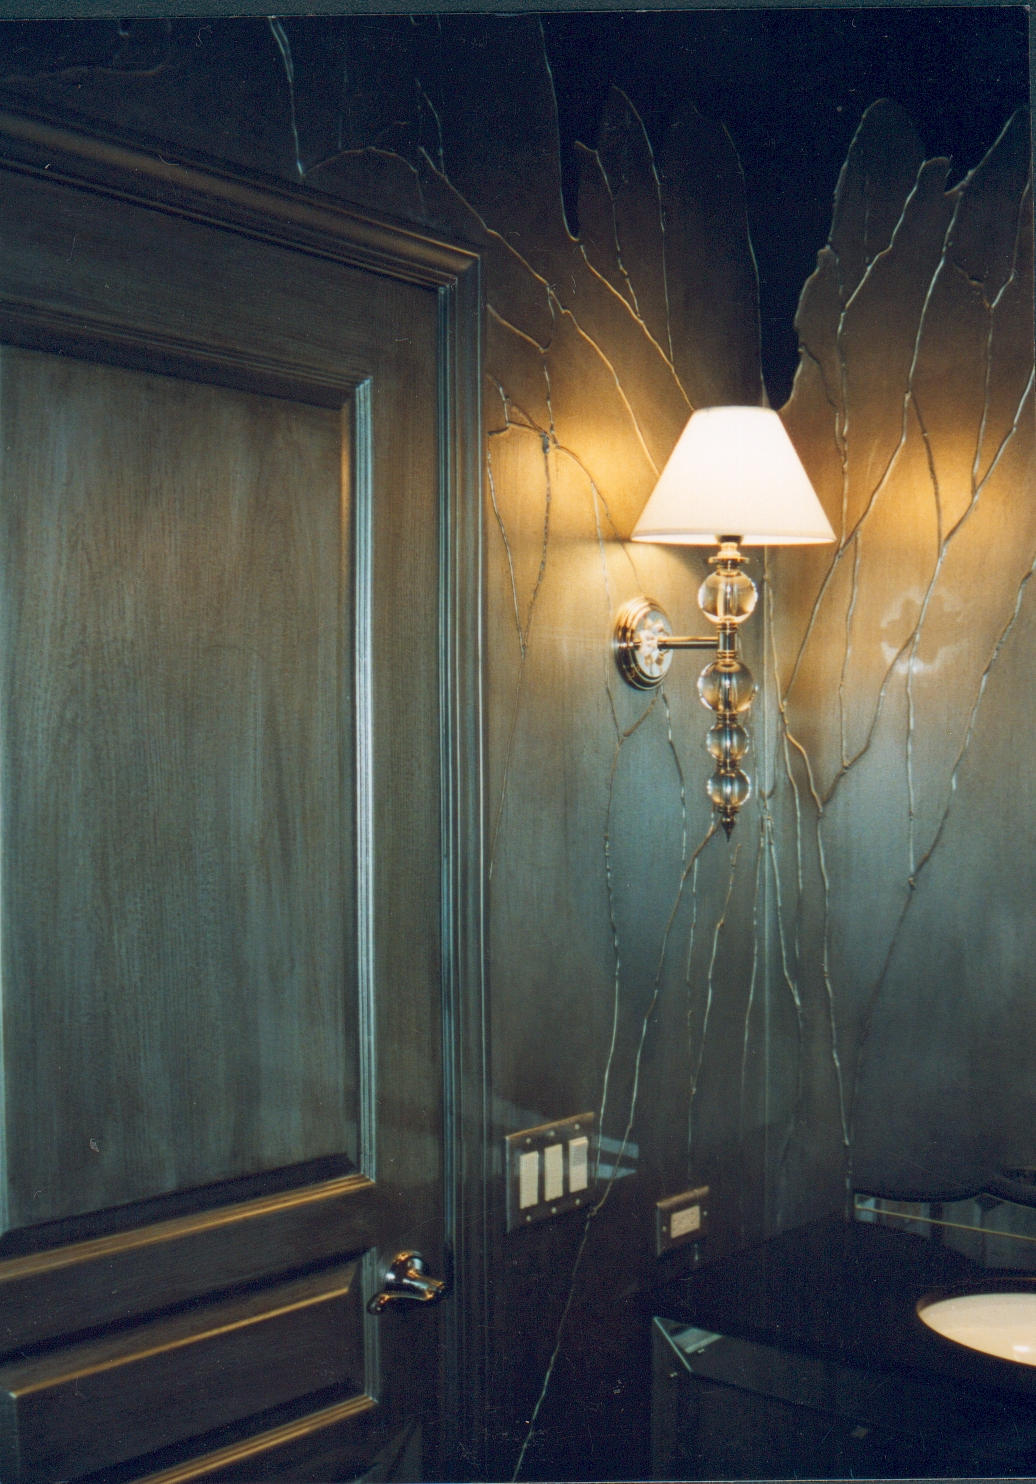 scala stucco + reflet (10)